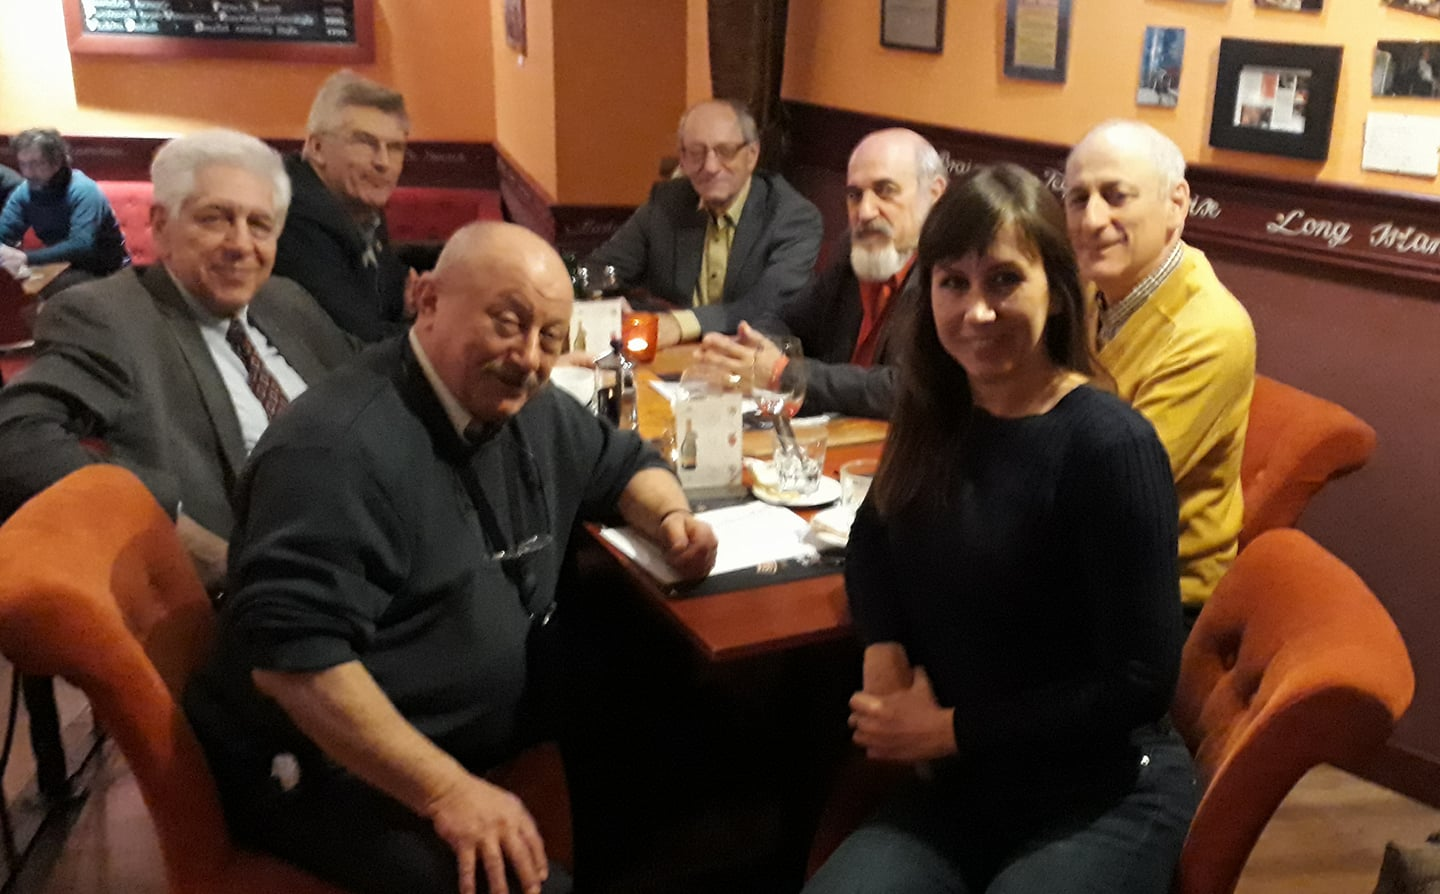 The meeting of the President of the Hungarian Public Relations Association, and the Member Emeritus' Body of the HuPRA. Zsófia Lakatos, President, György Tábori, Peter Sárosi, Csaba Galánfy, József Ferling, Tamas Barat